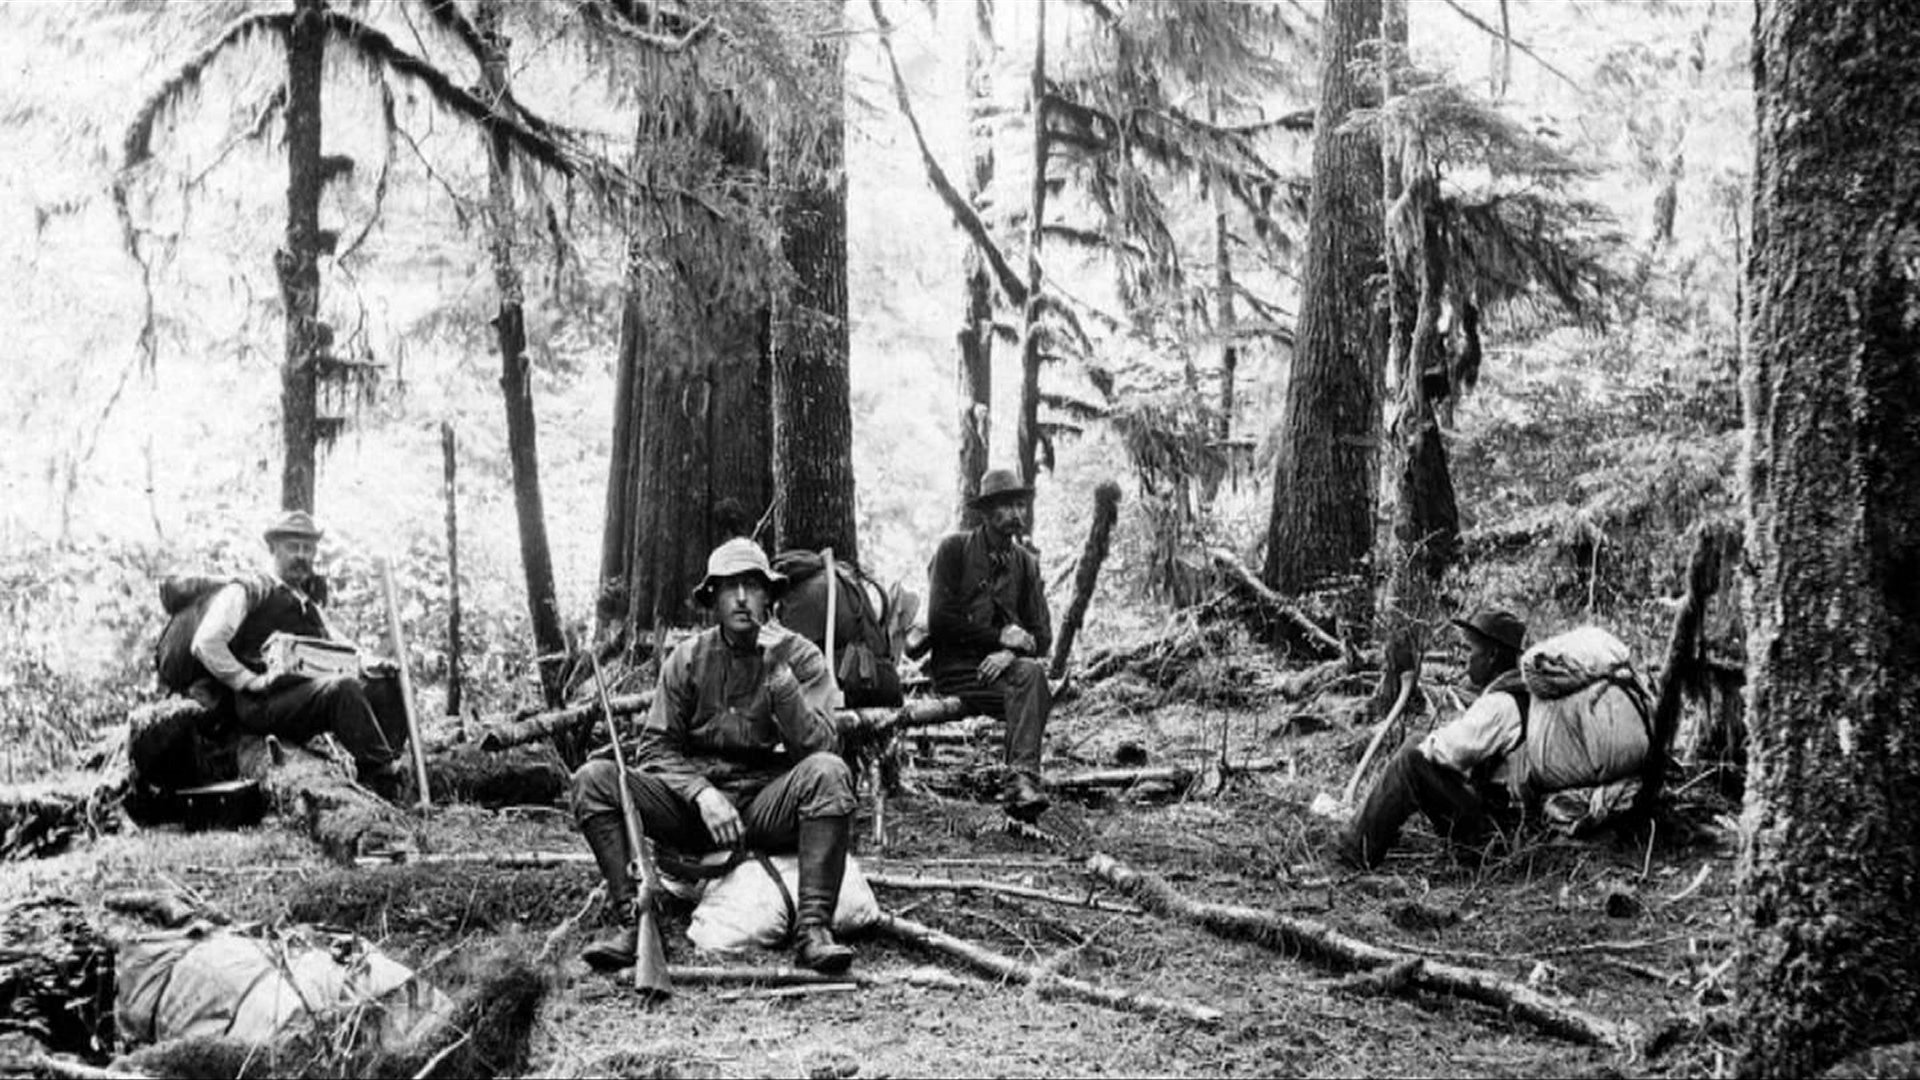 This Week in History: A fascinating trek across Vancouver Island in the 1890s